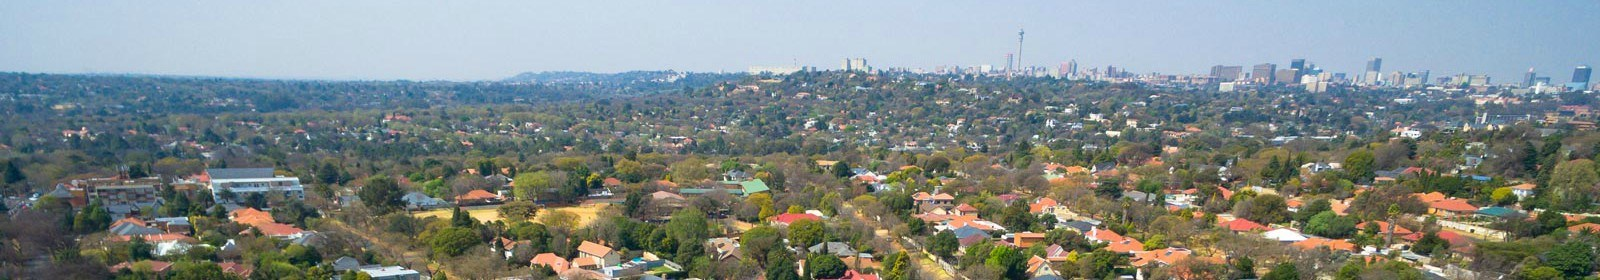 10 most popular suburbs to rent in Joburg